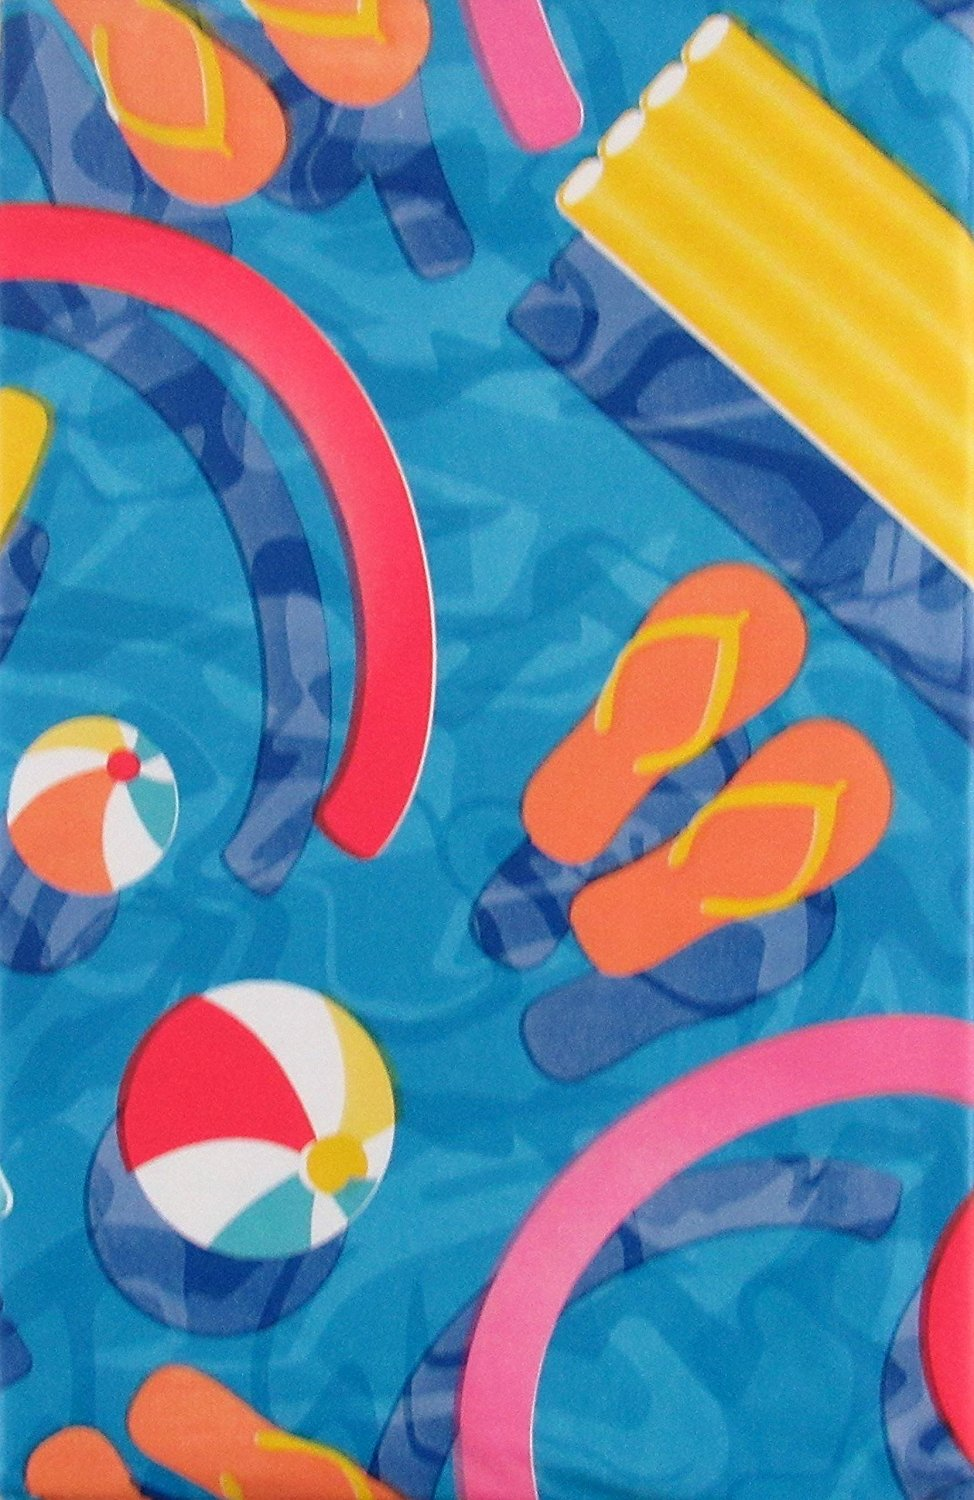 Elrene Vinyl Flannel Backed Tablecloth Blue 52 x 70 Oblong Pool Party